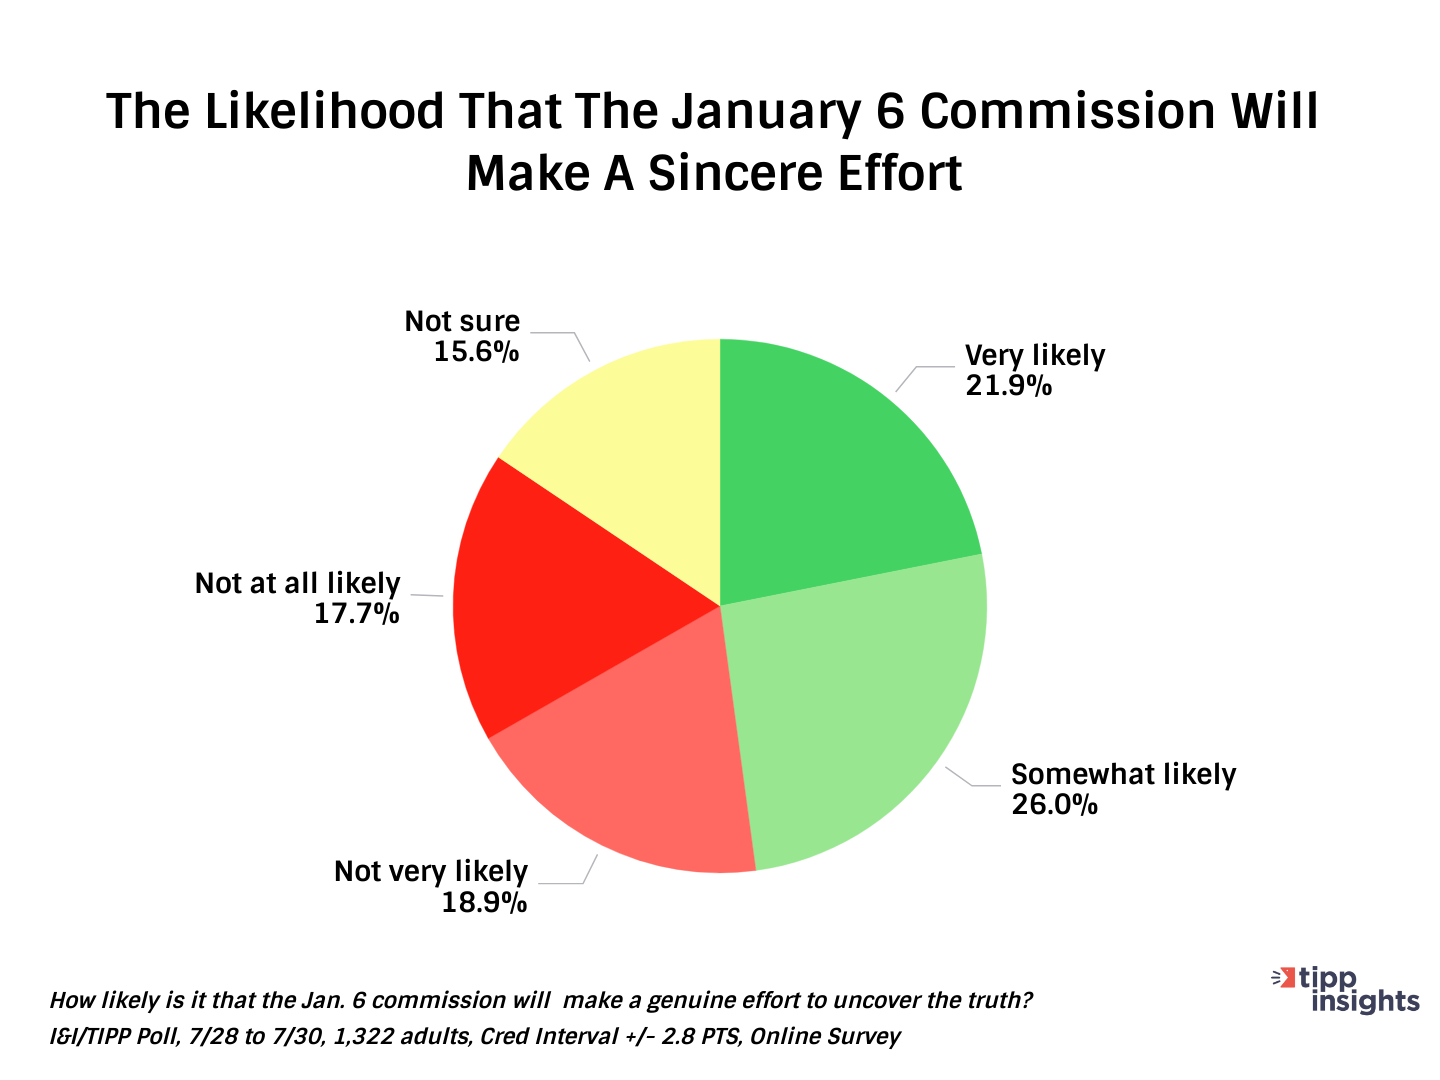 TIPP Poll Results Pie Chart: Likelihood that the january 6 commission will make a sincere effort